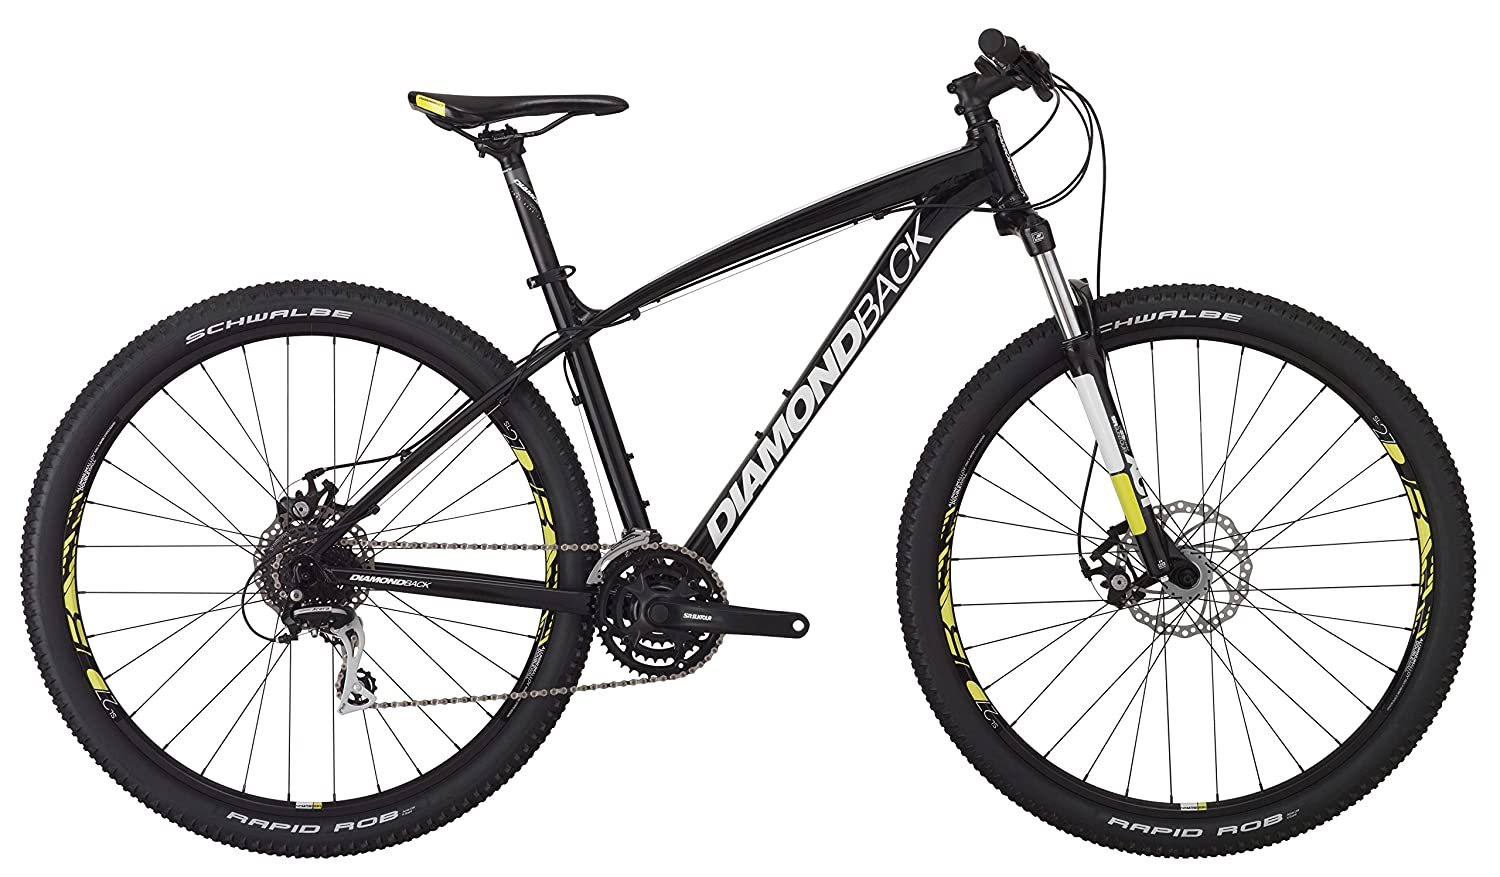 Amazon.com : Diamondback Bicycles Overdrive 29er Complete READY RIDE Hardtail Mountain Bike